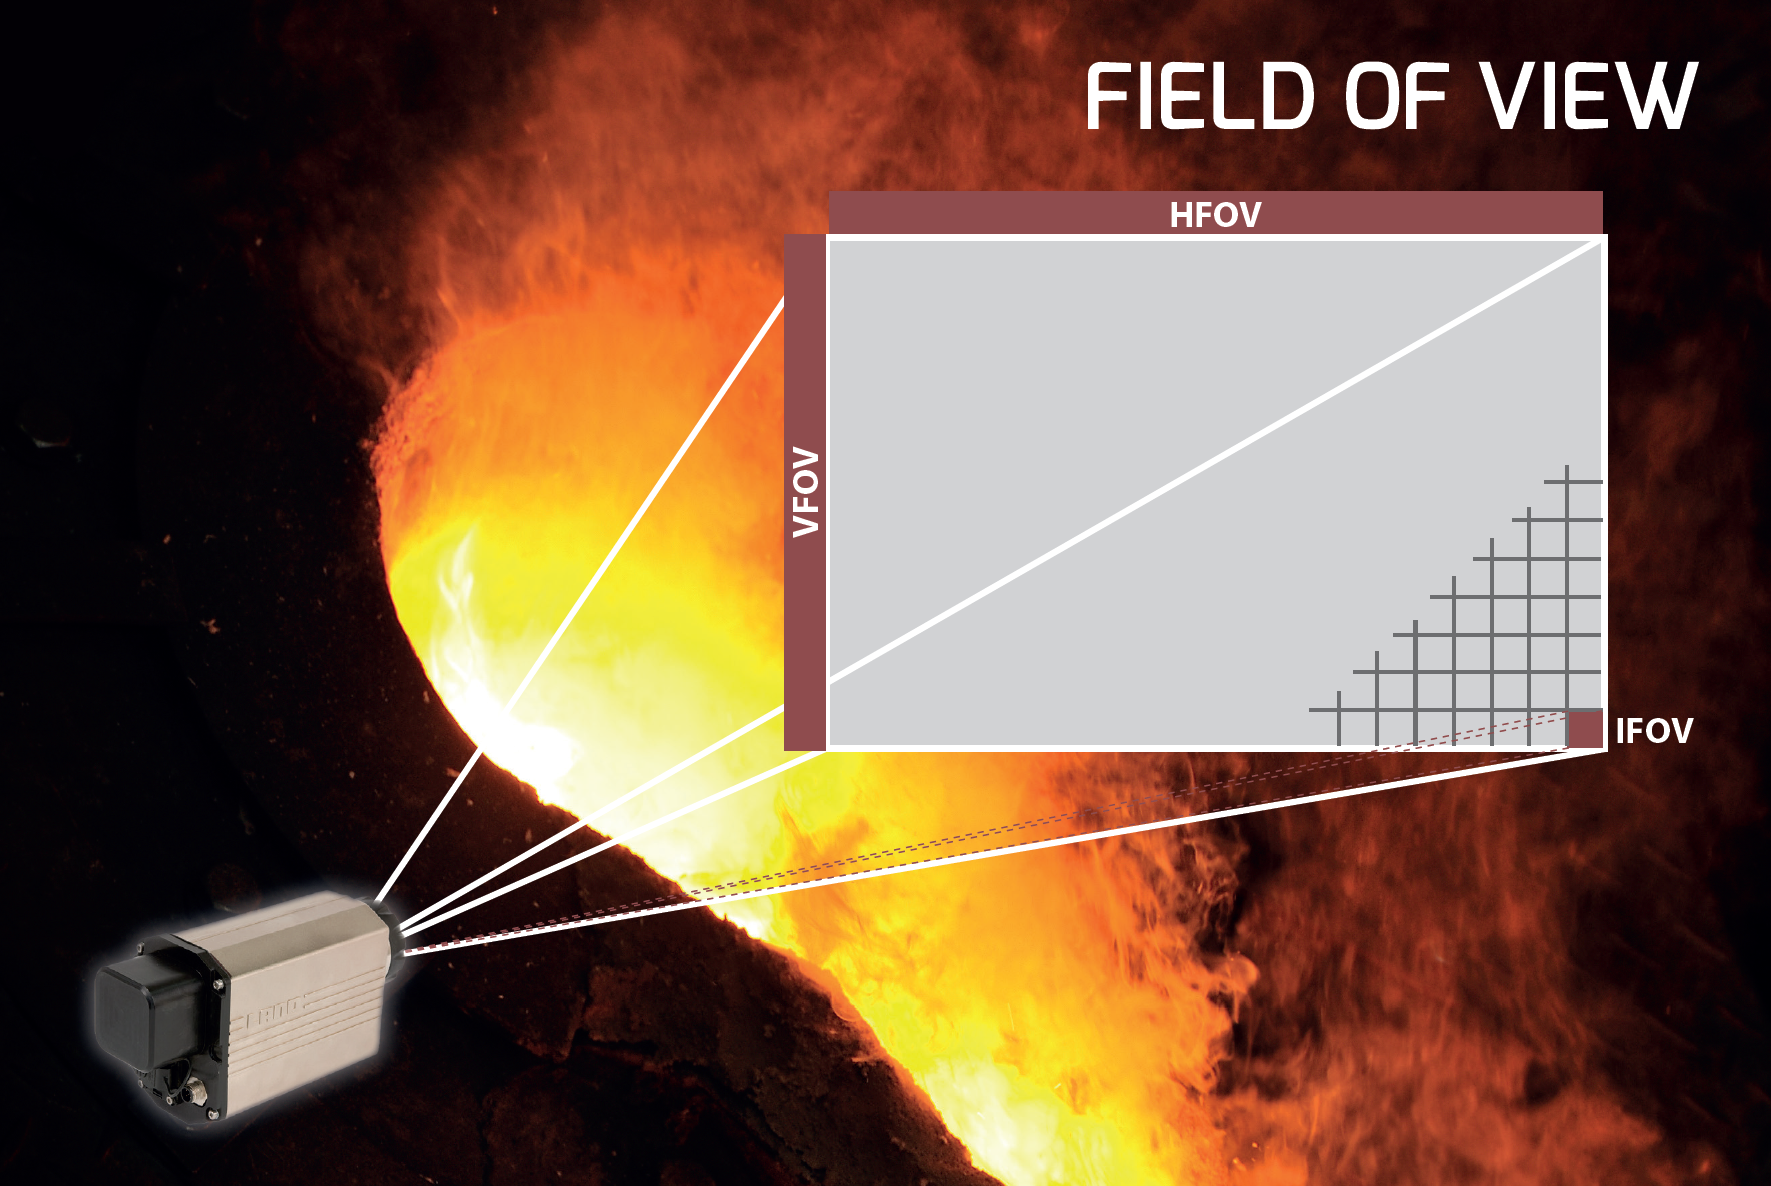 Slag Detection System - Field of View